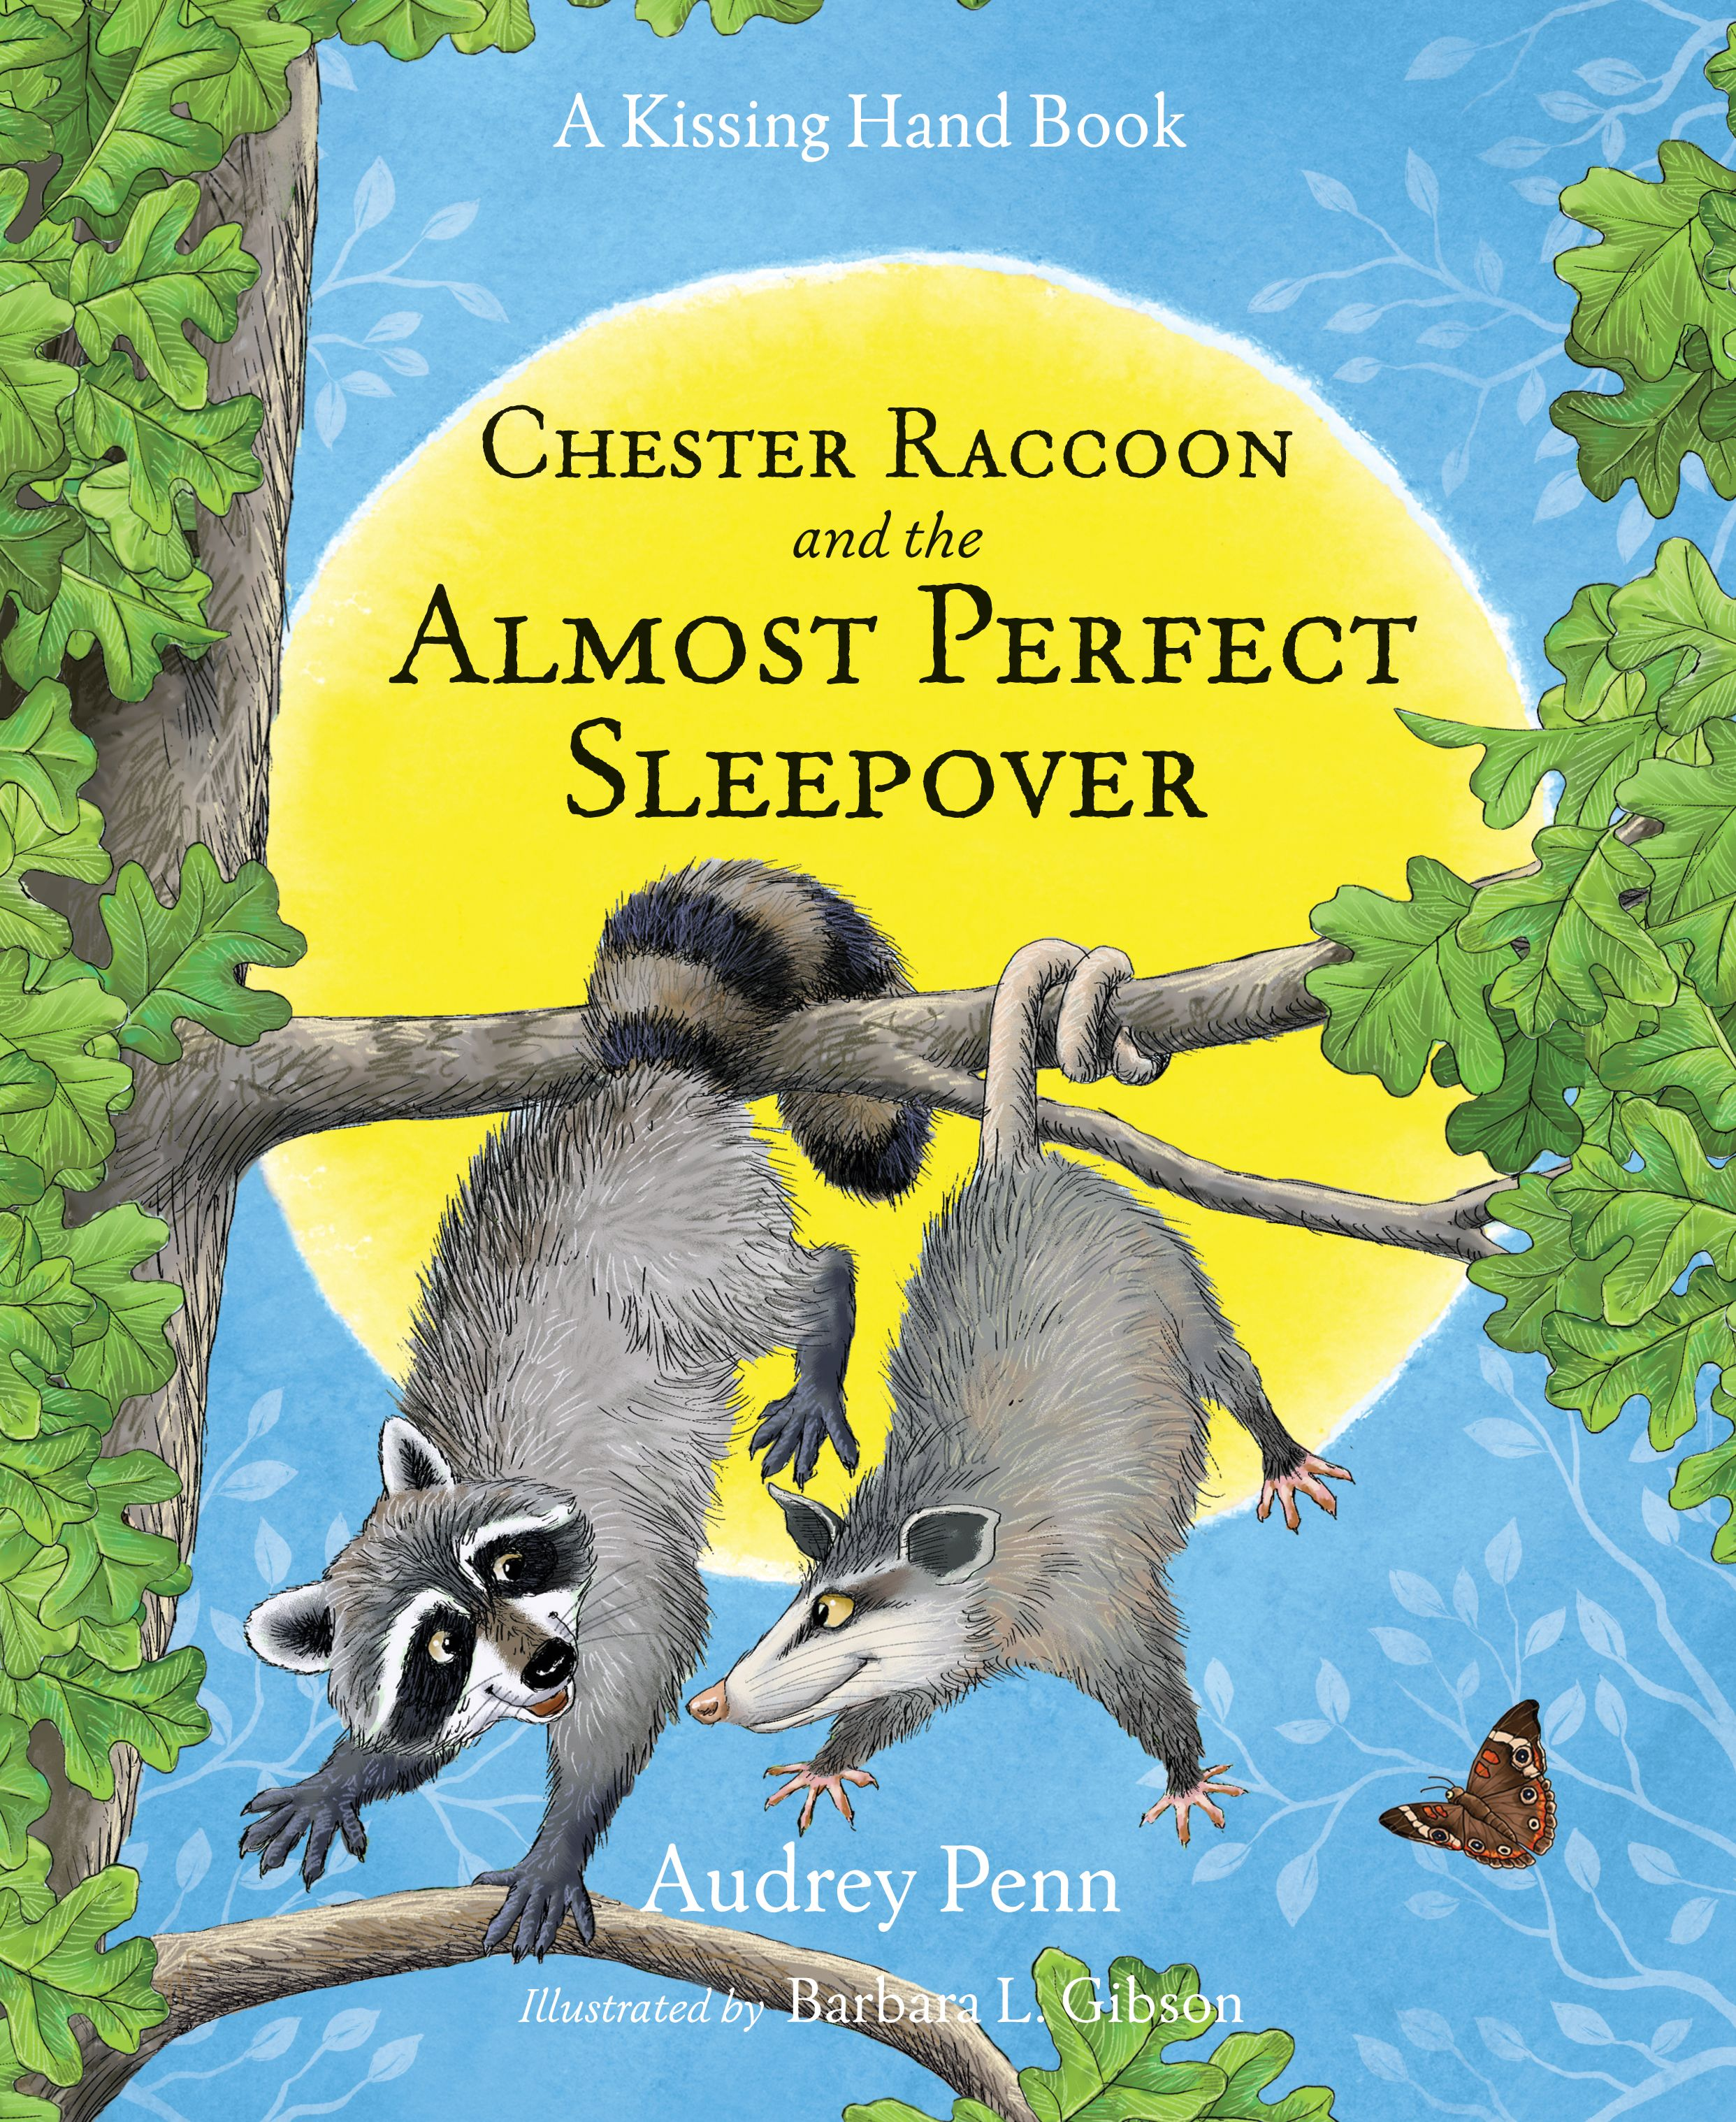 Chester Raccoon and the Almost Perfect Sleepover 2016 Book Cover